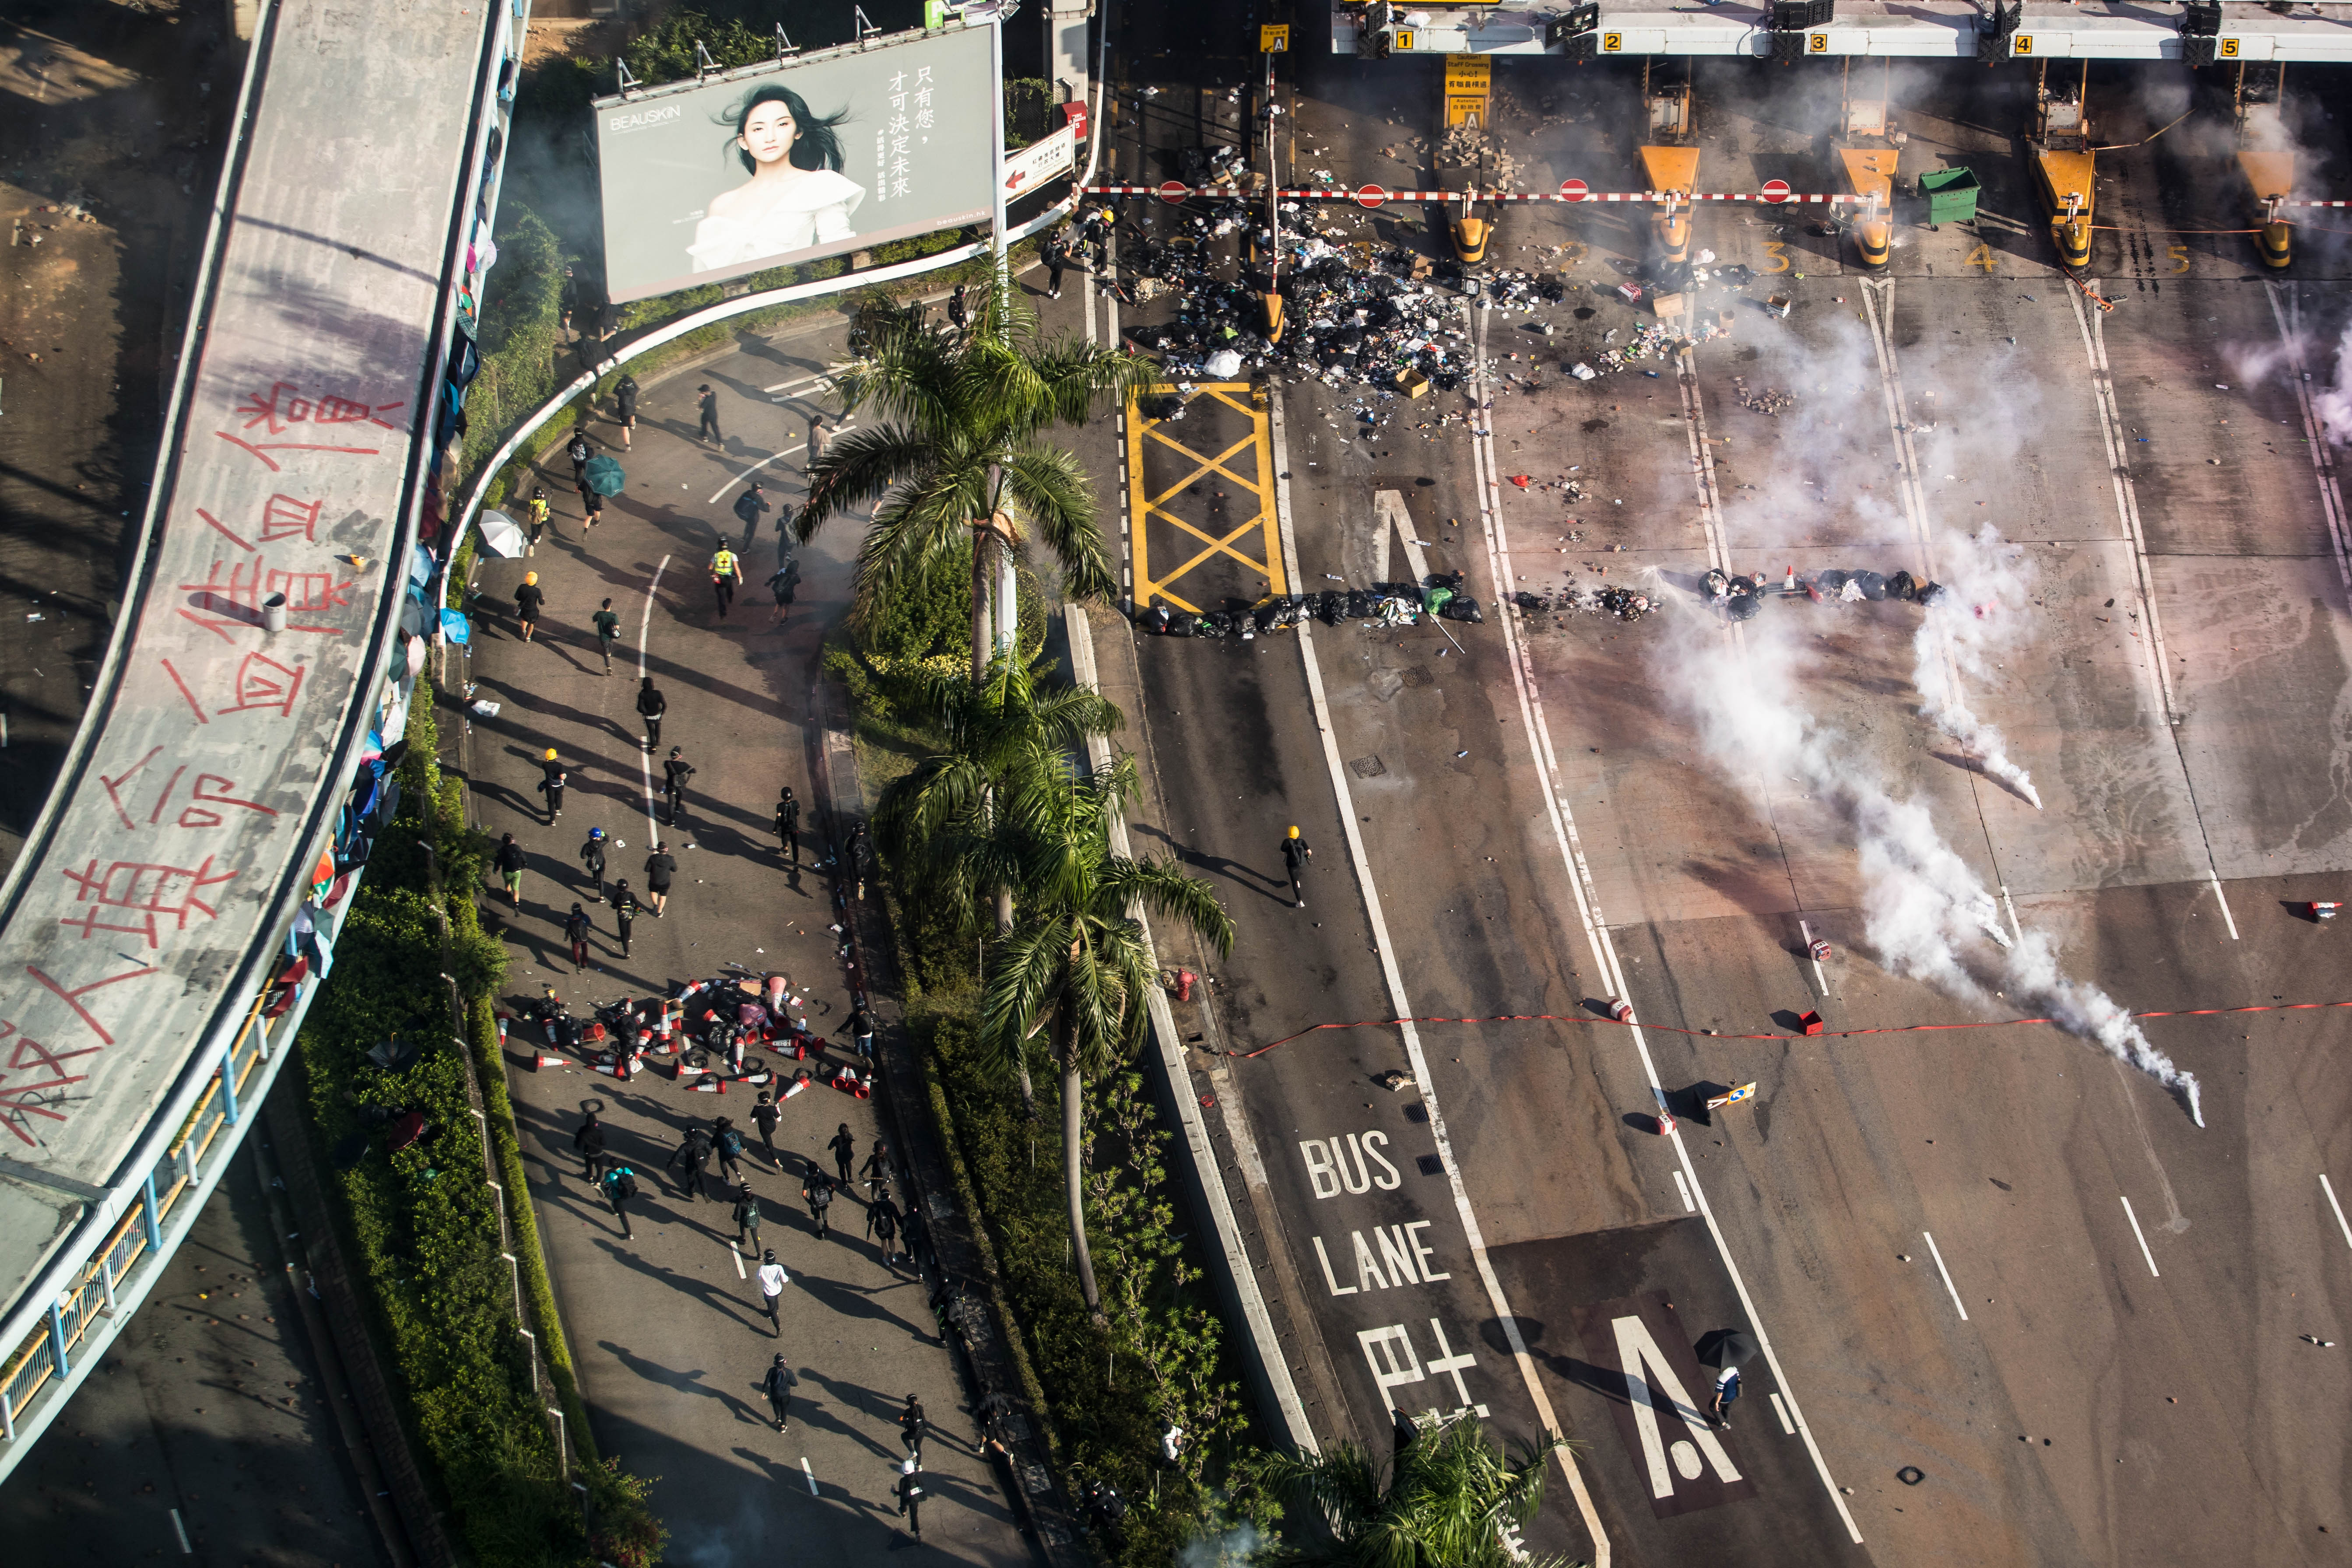 Police fire tear gas as protesters run on a road while trying to leave Hong Kong Polytechnic University in Hung Hom district of Hong Kong on November 18.